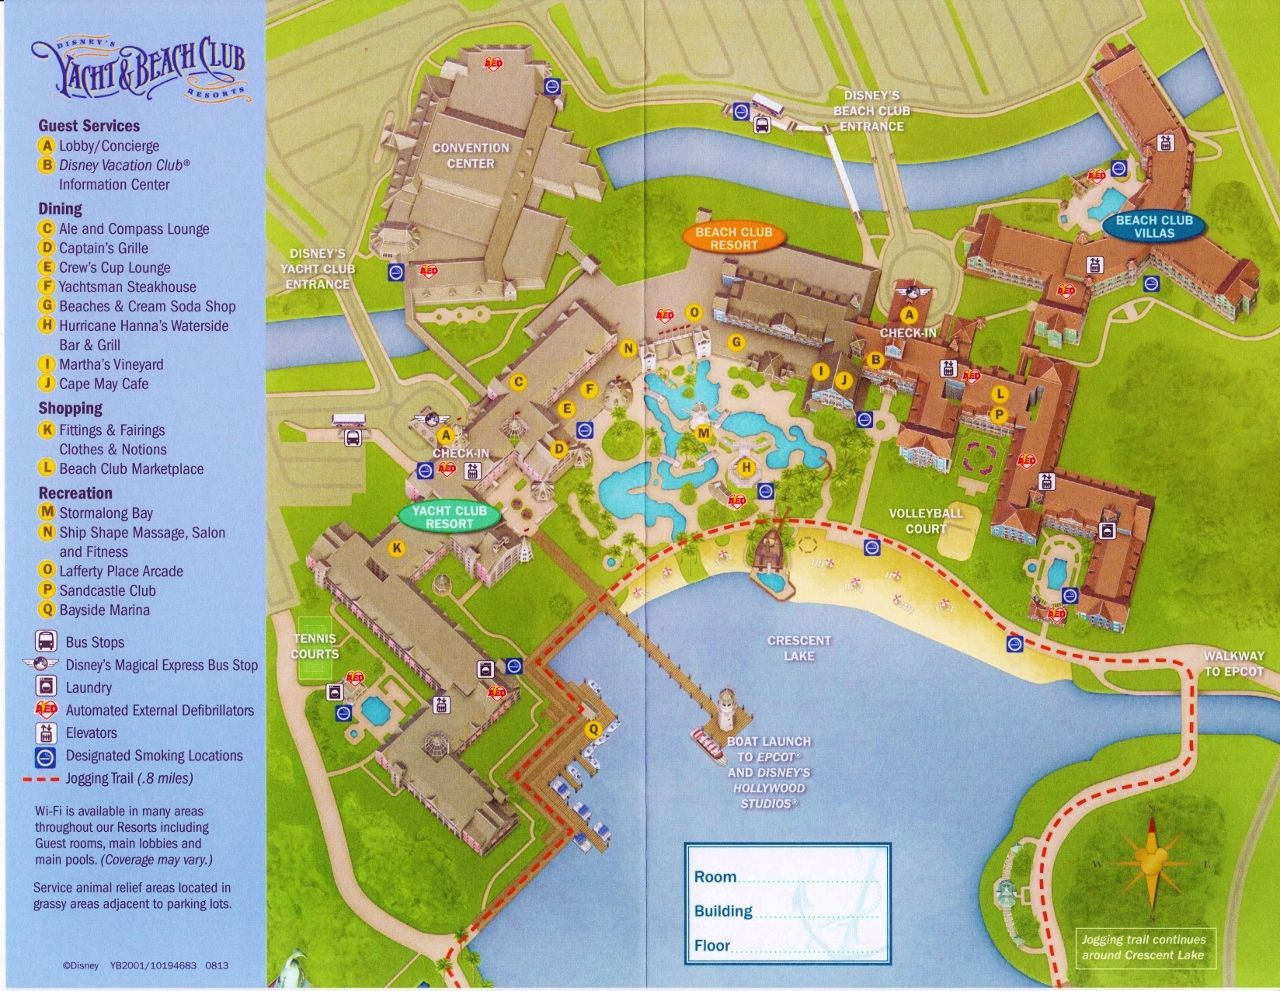 map disney's yacht and beach club resorts and beach club villas. review disney's beach club villas  beach club resorts and villas